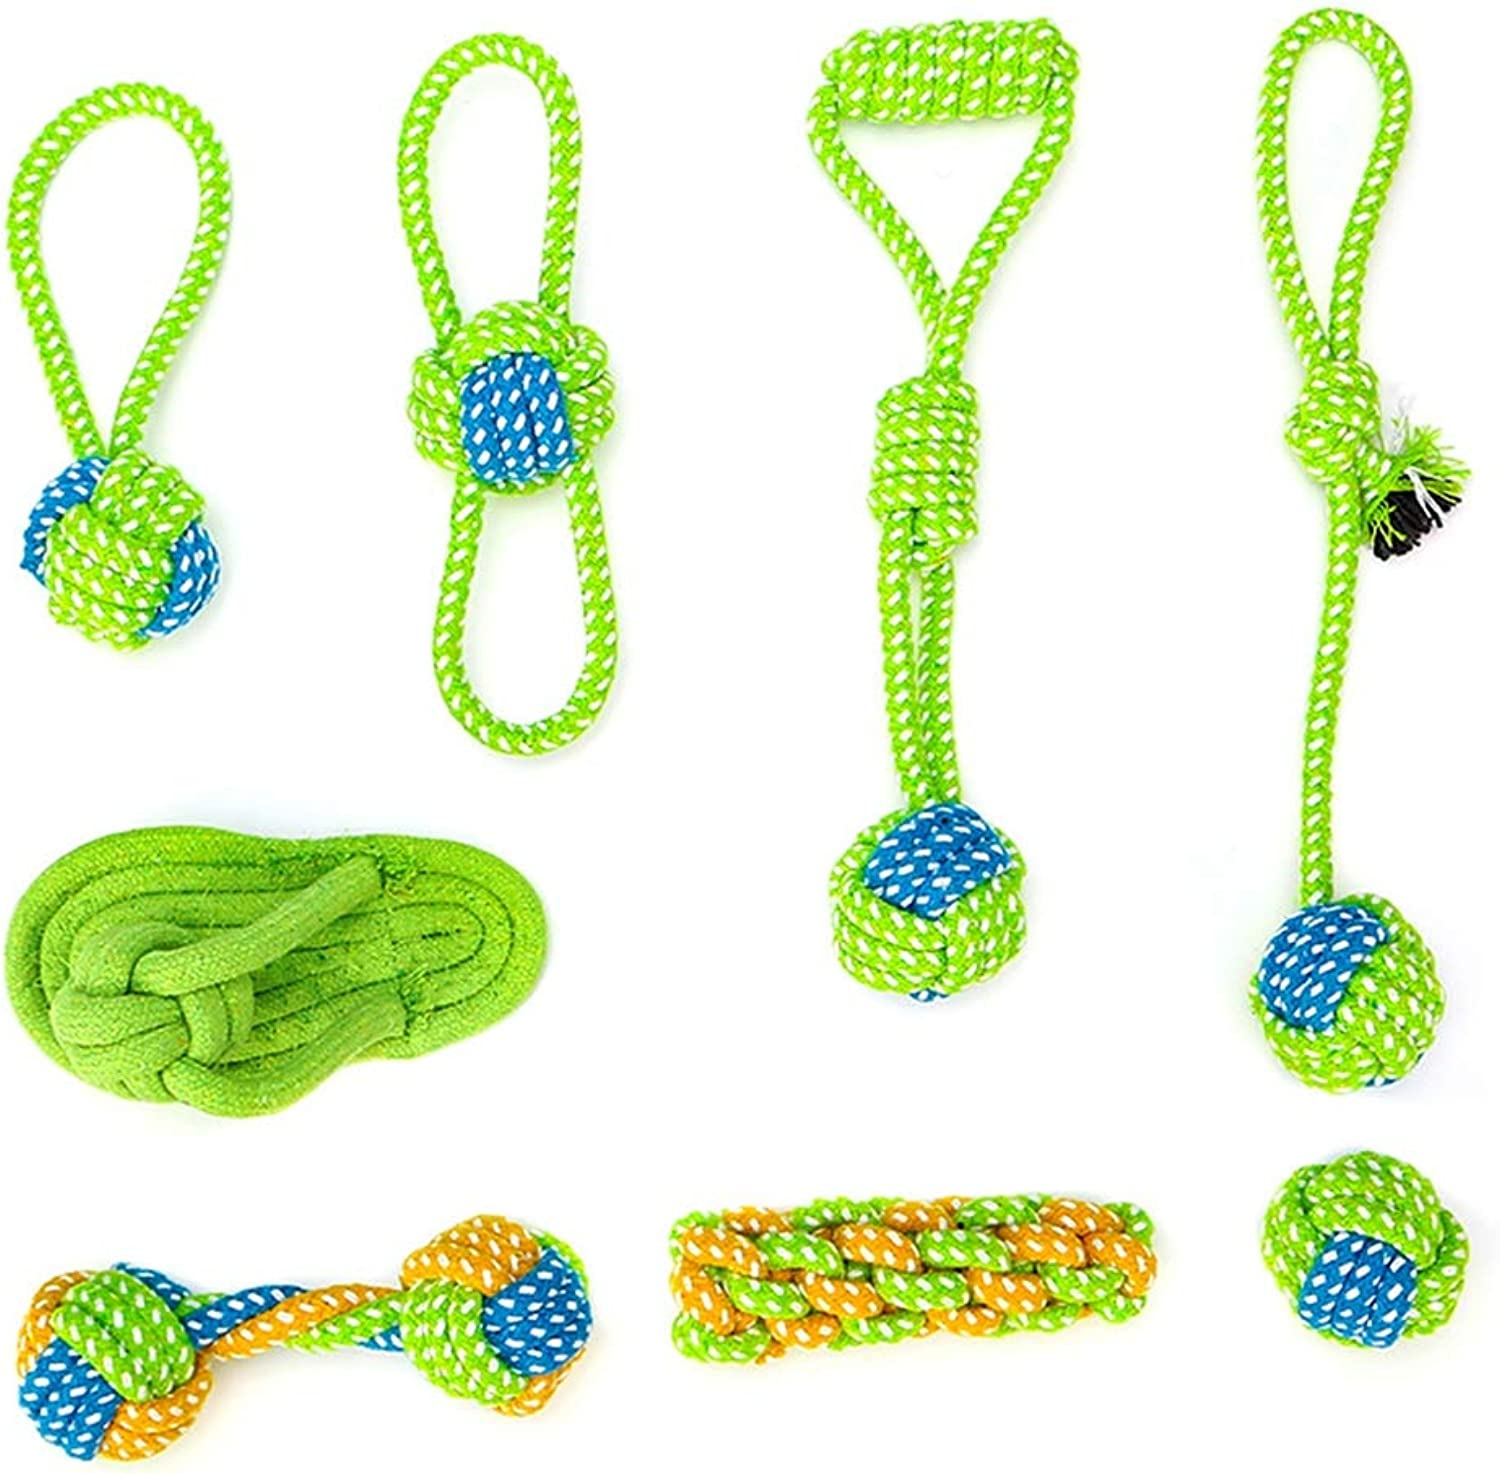 Dog Rope Toys NonToxic Material Vibrant colors Attractive Interactive Chew Knot Toys for Small Medium Large Dogs